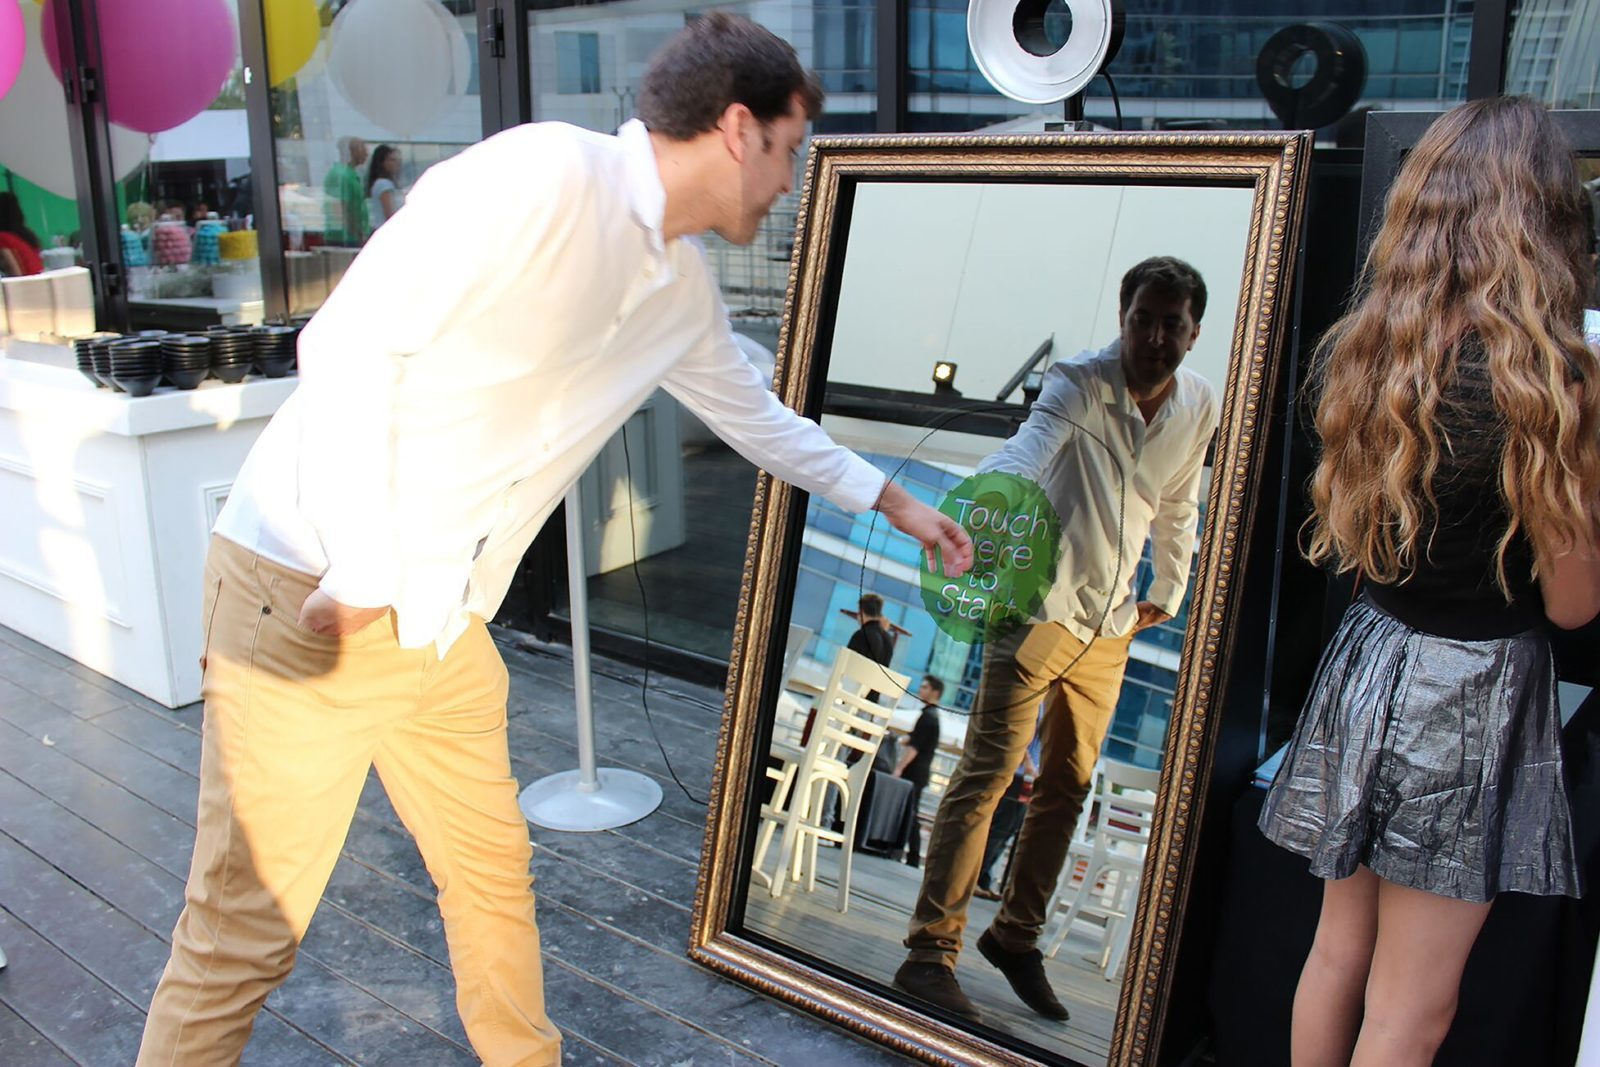 man touching mirror